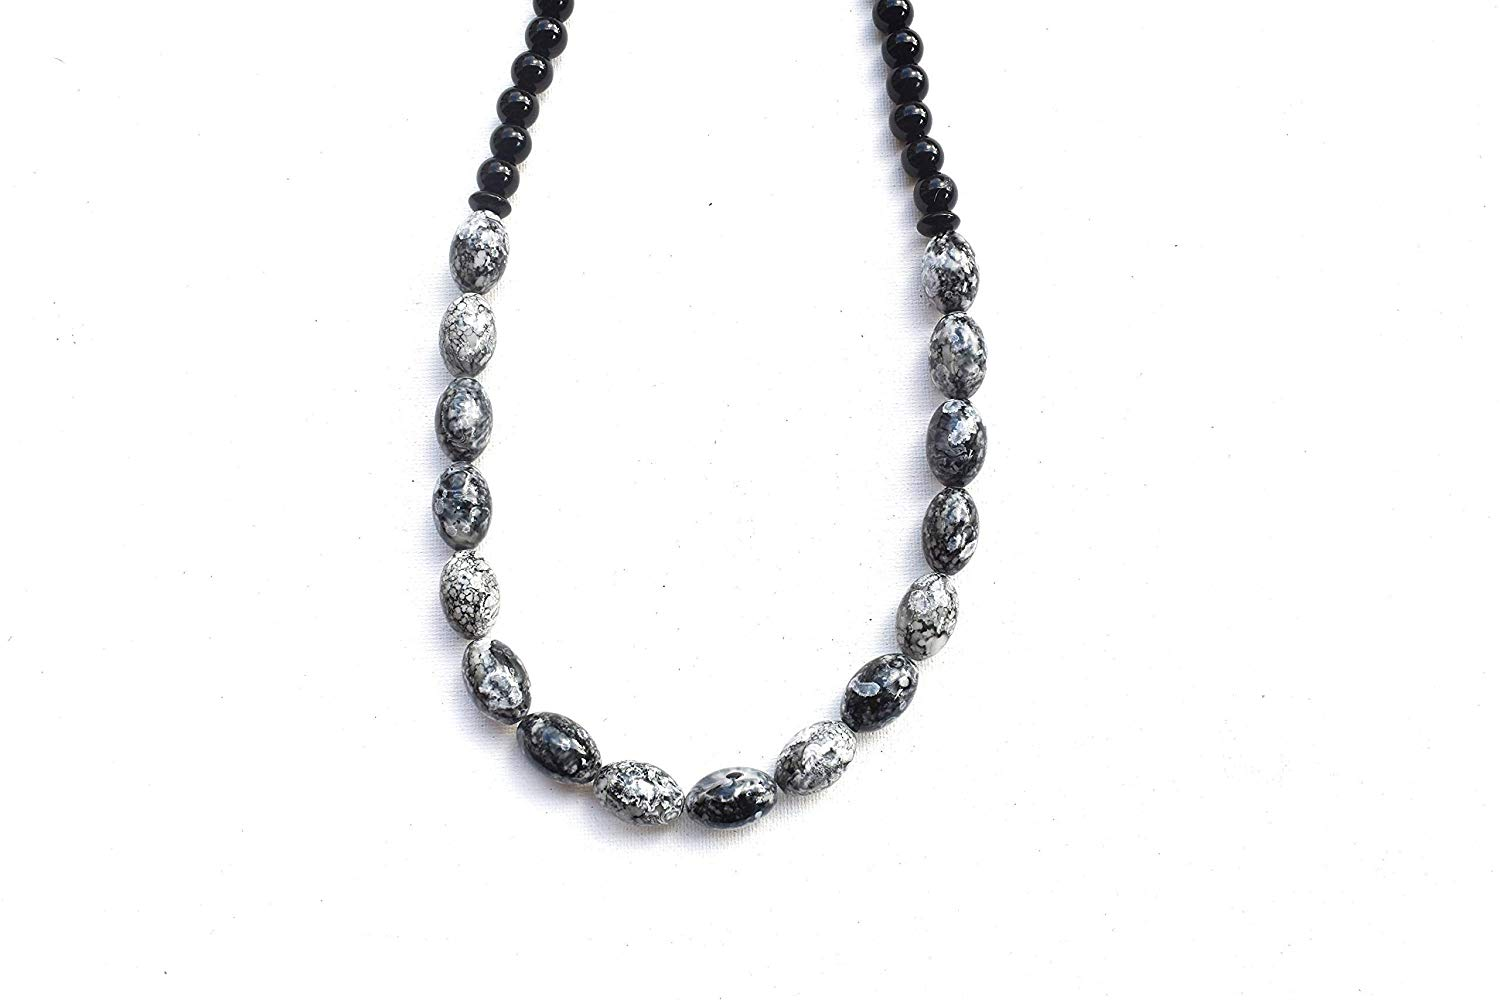 Bib Necklace with Gray, White and Black Barrel Beads - Great for Layering